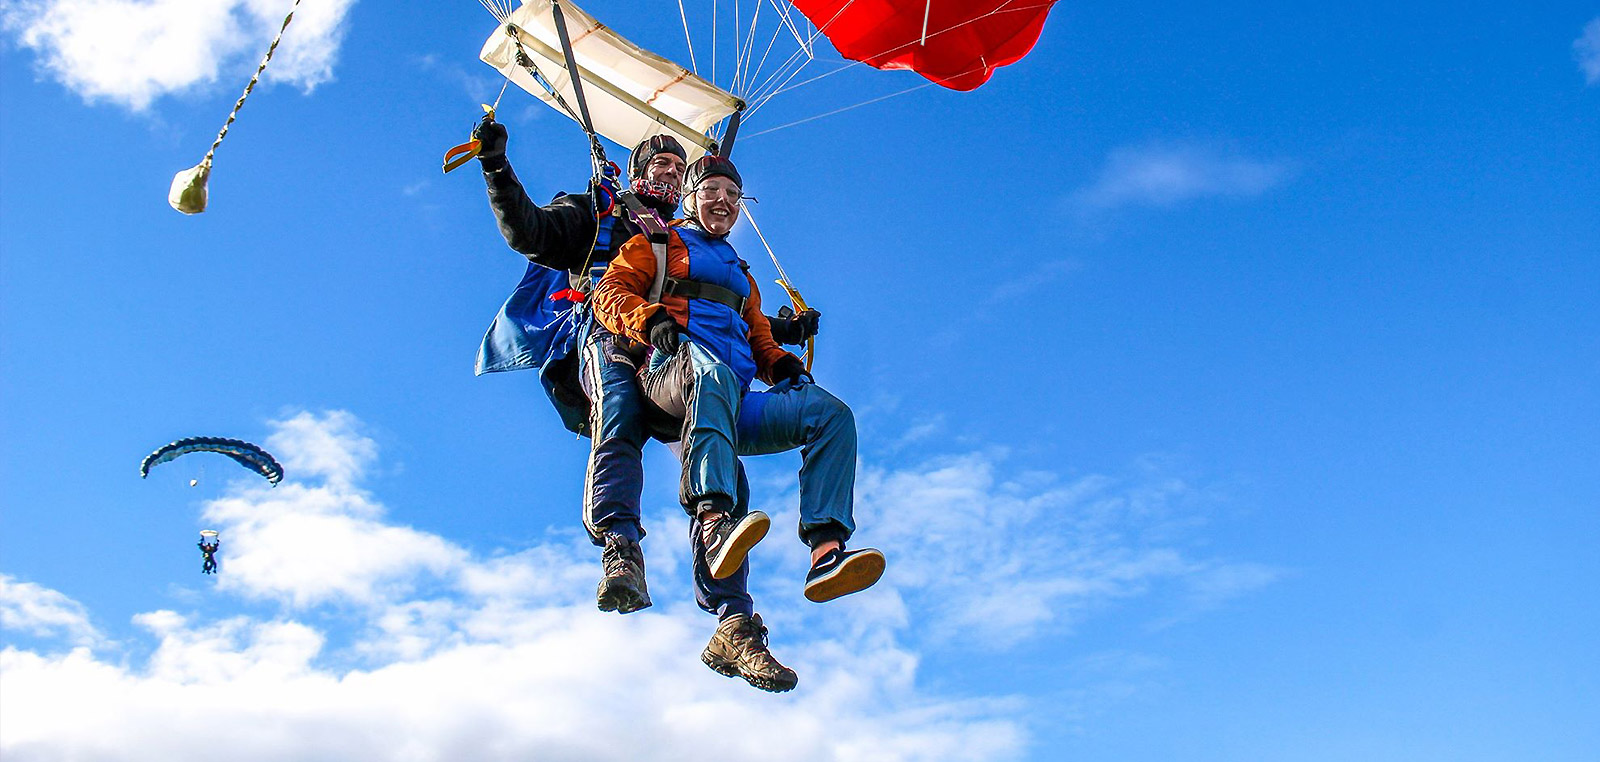 What height does the parachute open?